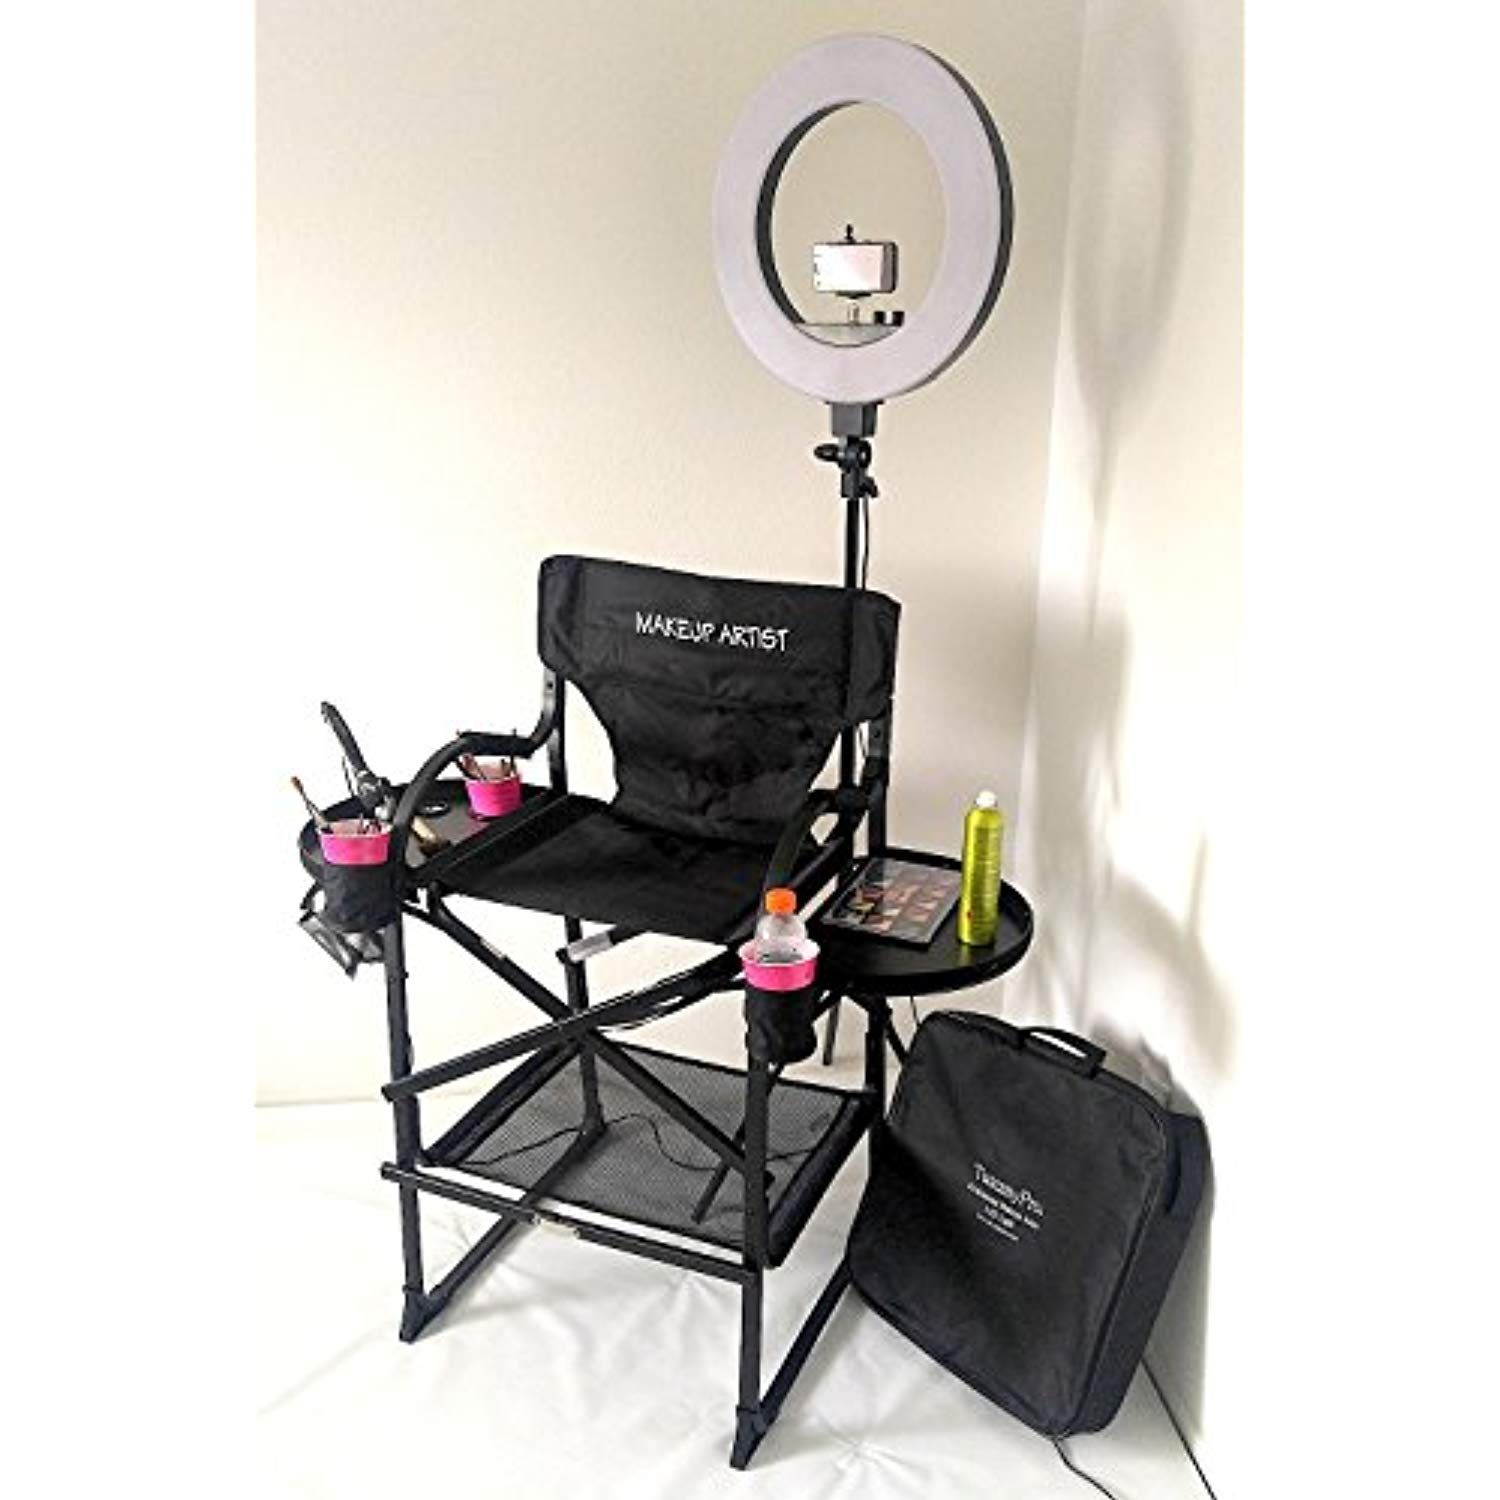 Unique Tuscanypro Folding Compact Makeup Artist Chair 29 Seat Height W 18a Led Ring Light Chair Carry Bag Makeup Artist Chair Makeup Chair Makeup Artist